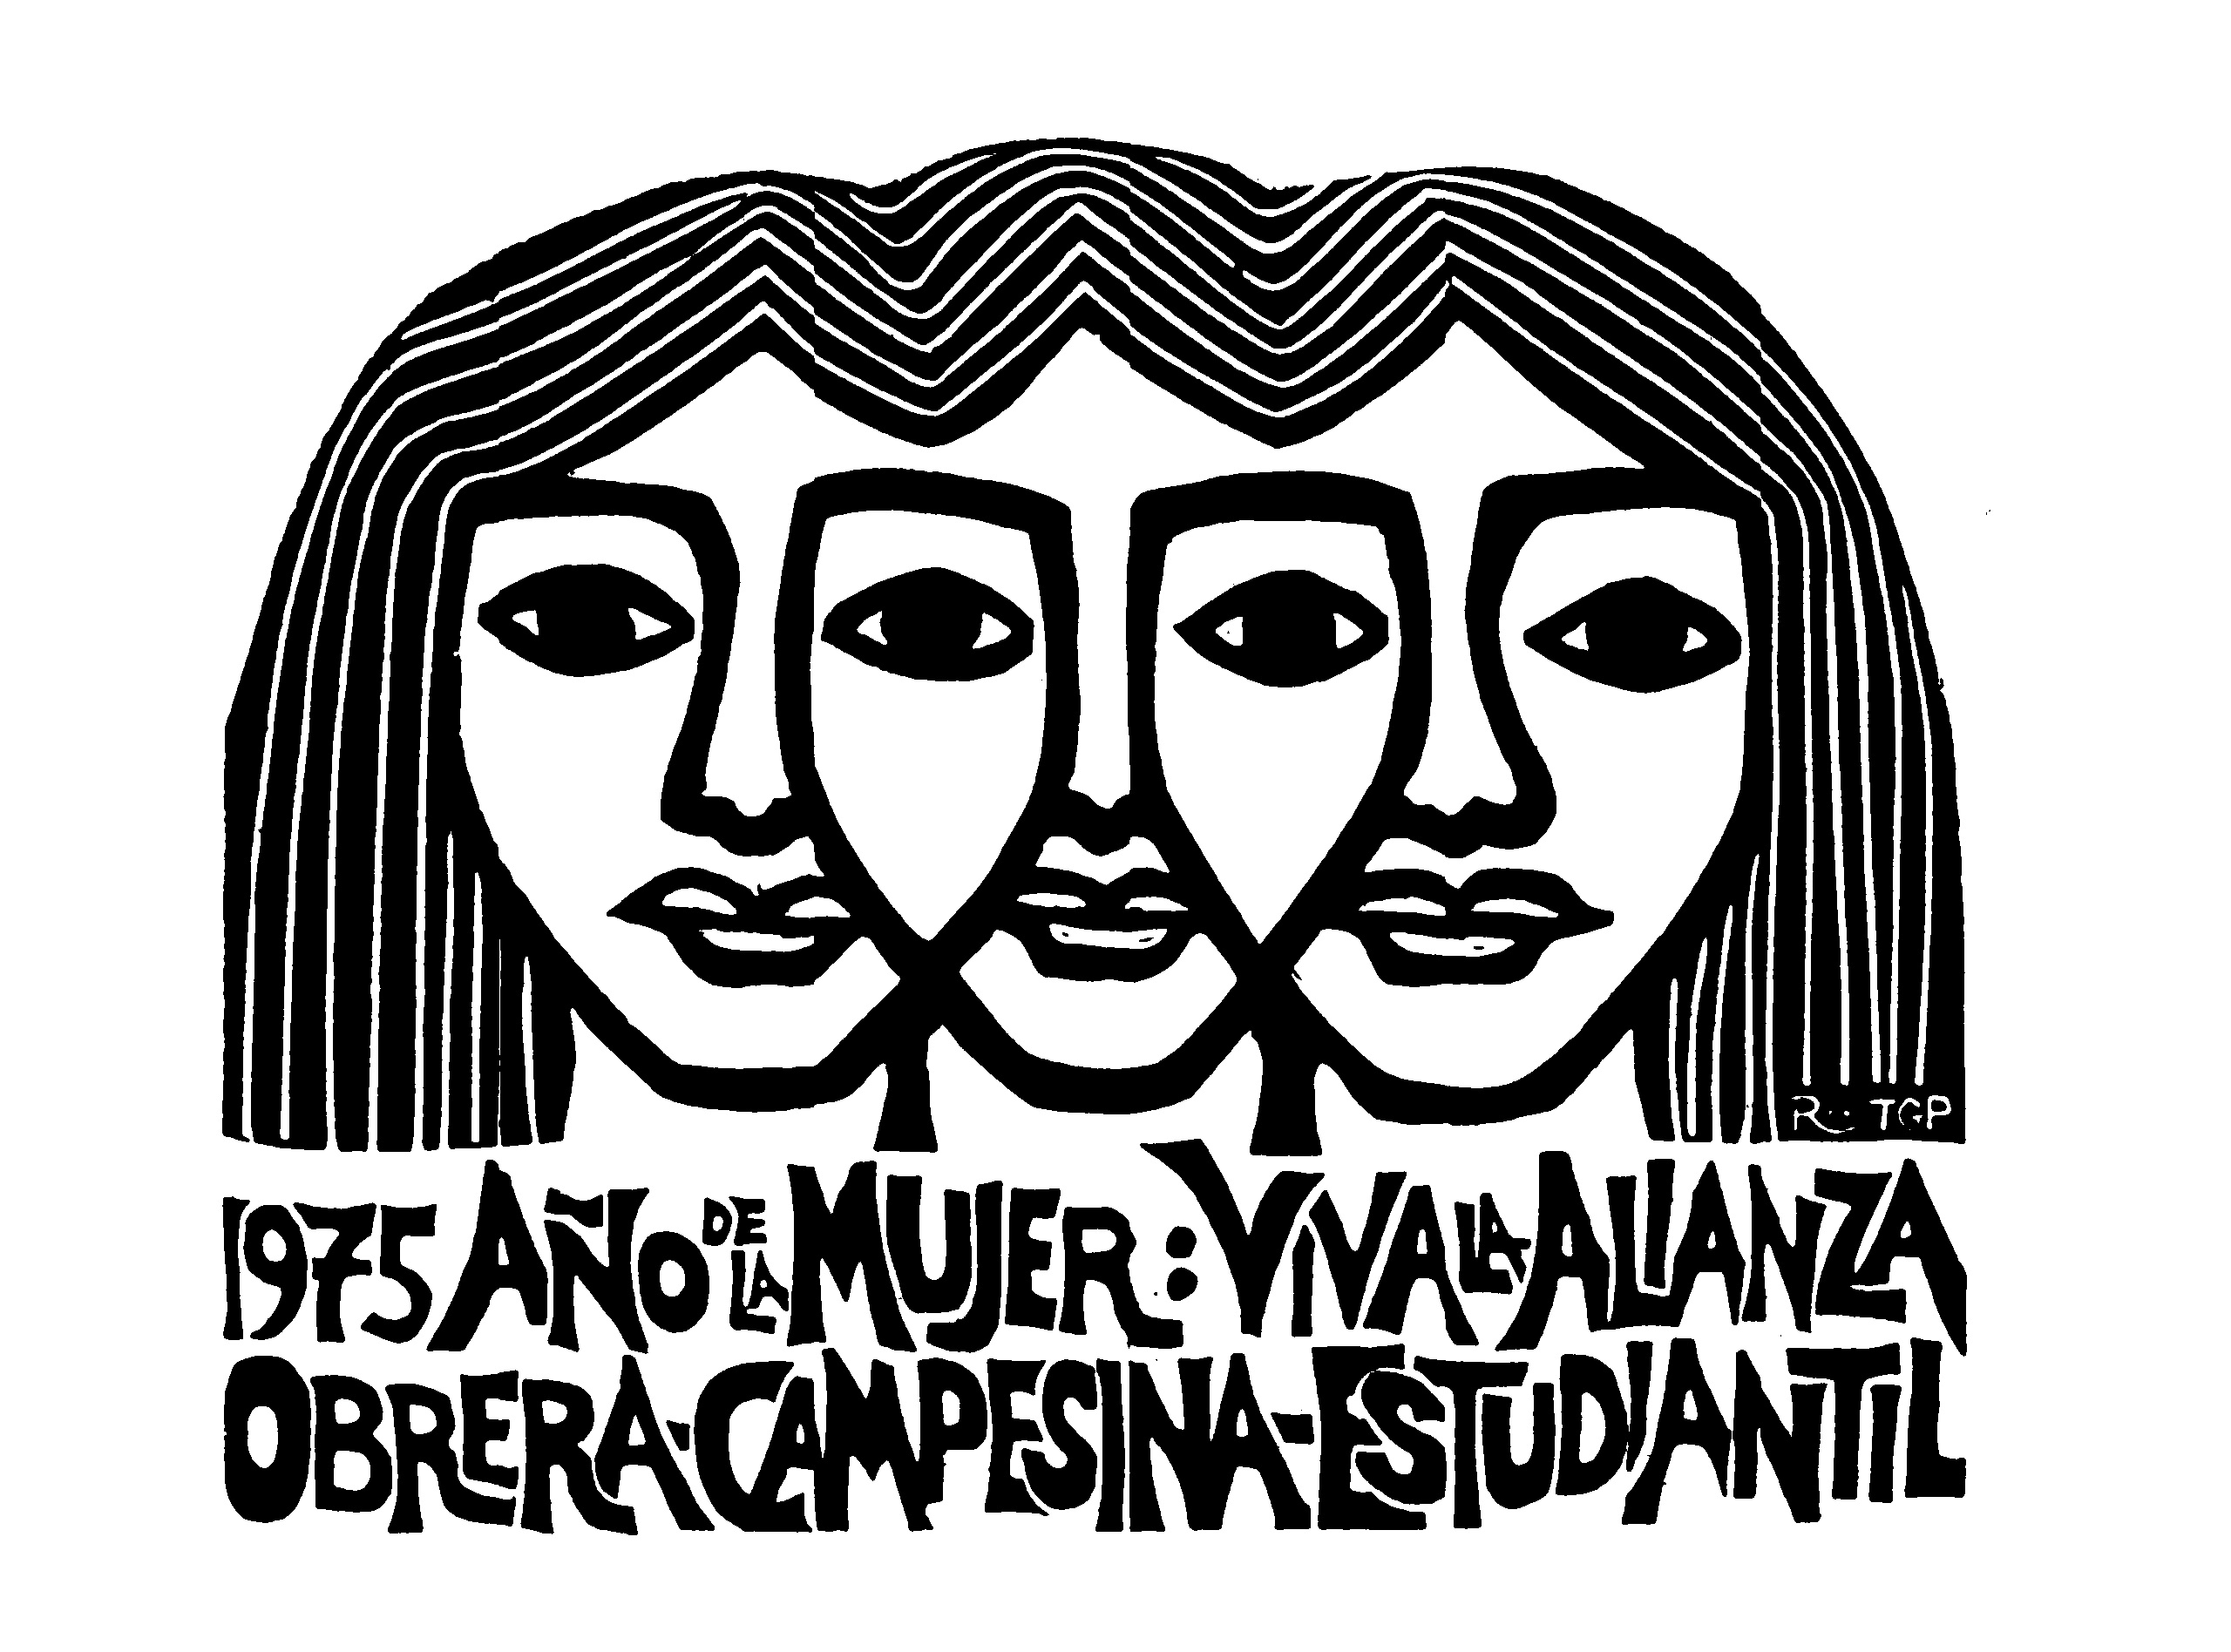 international women s day greeting social justice Unfinished Feminist Movement rini womenday hr